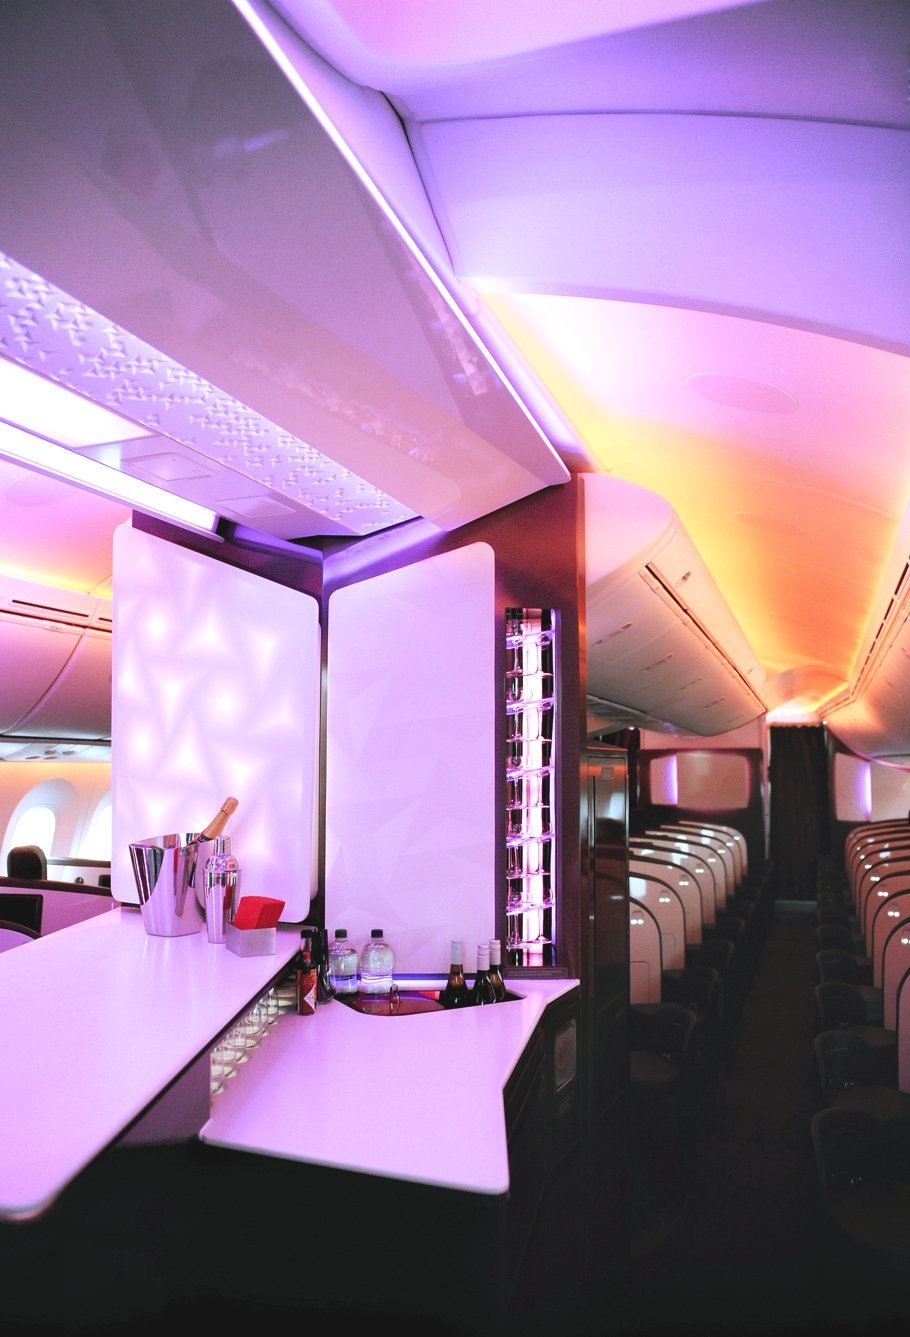 virgin-atlantic-upper-class-redesign-adelto-13